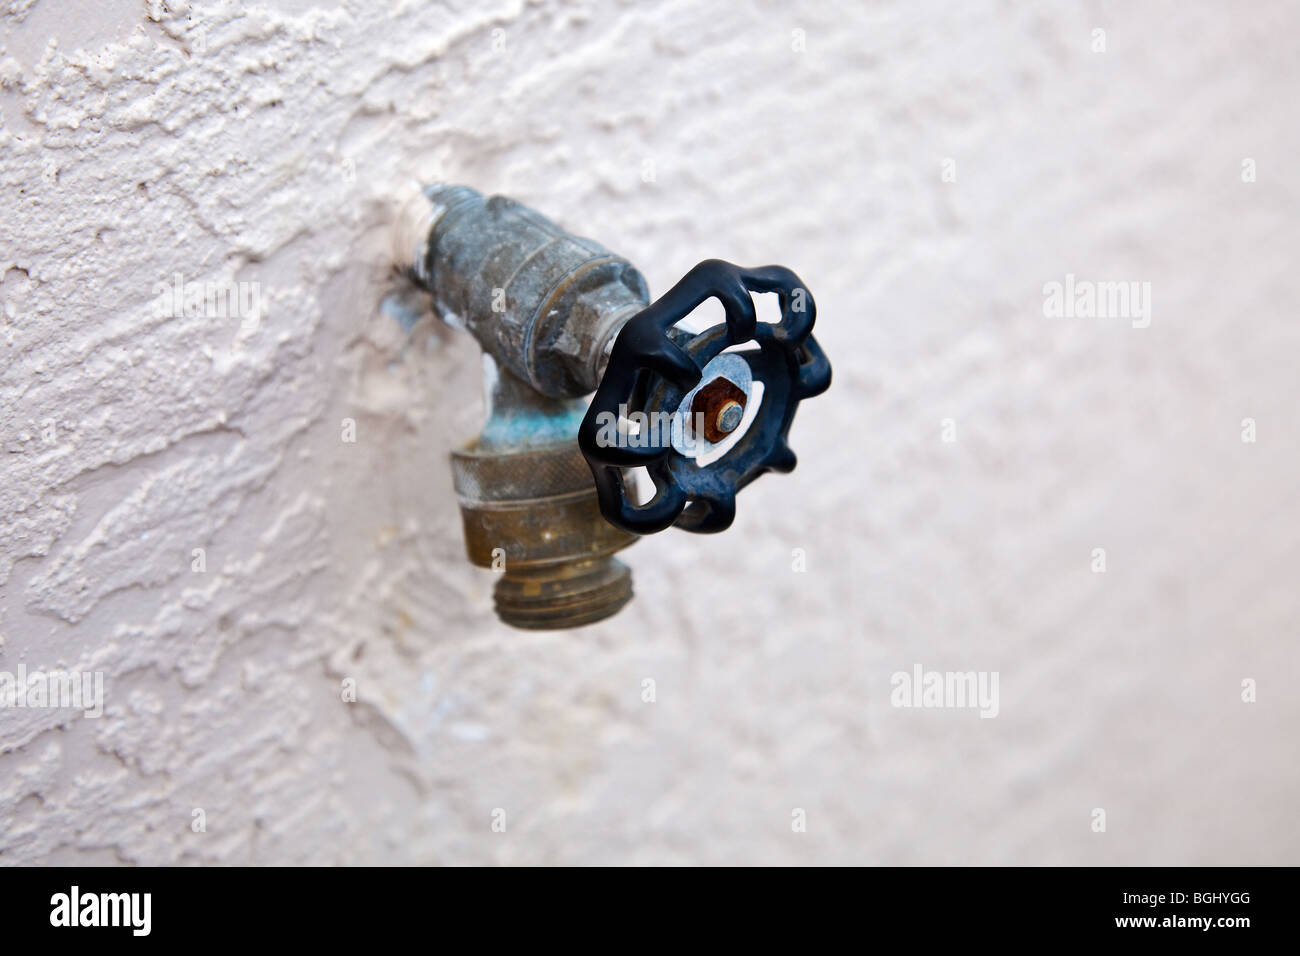 water spigot with backflow preventer valve on stucco wall - Stock Image